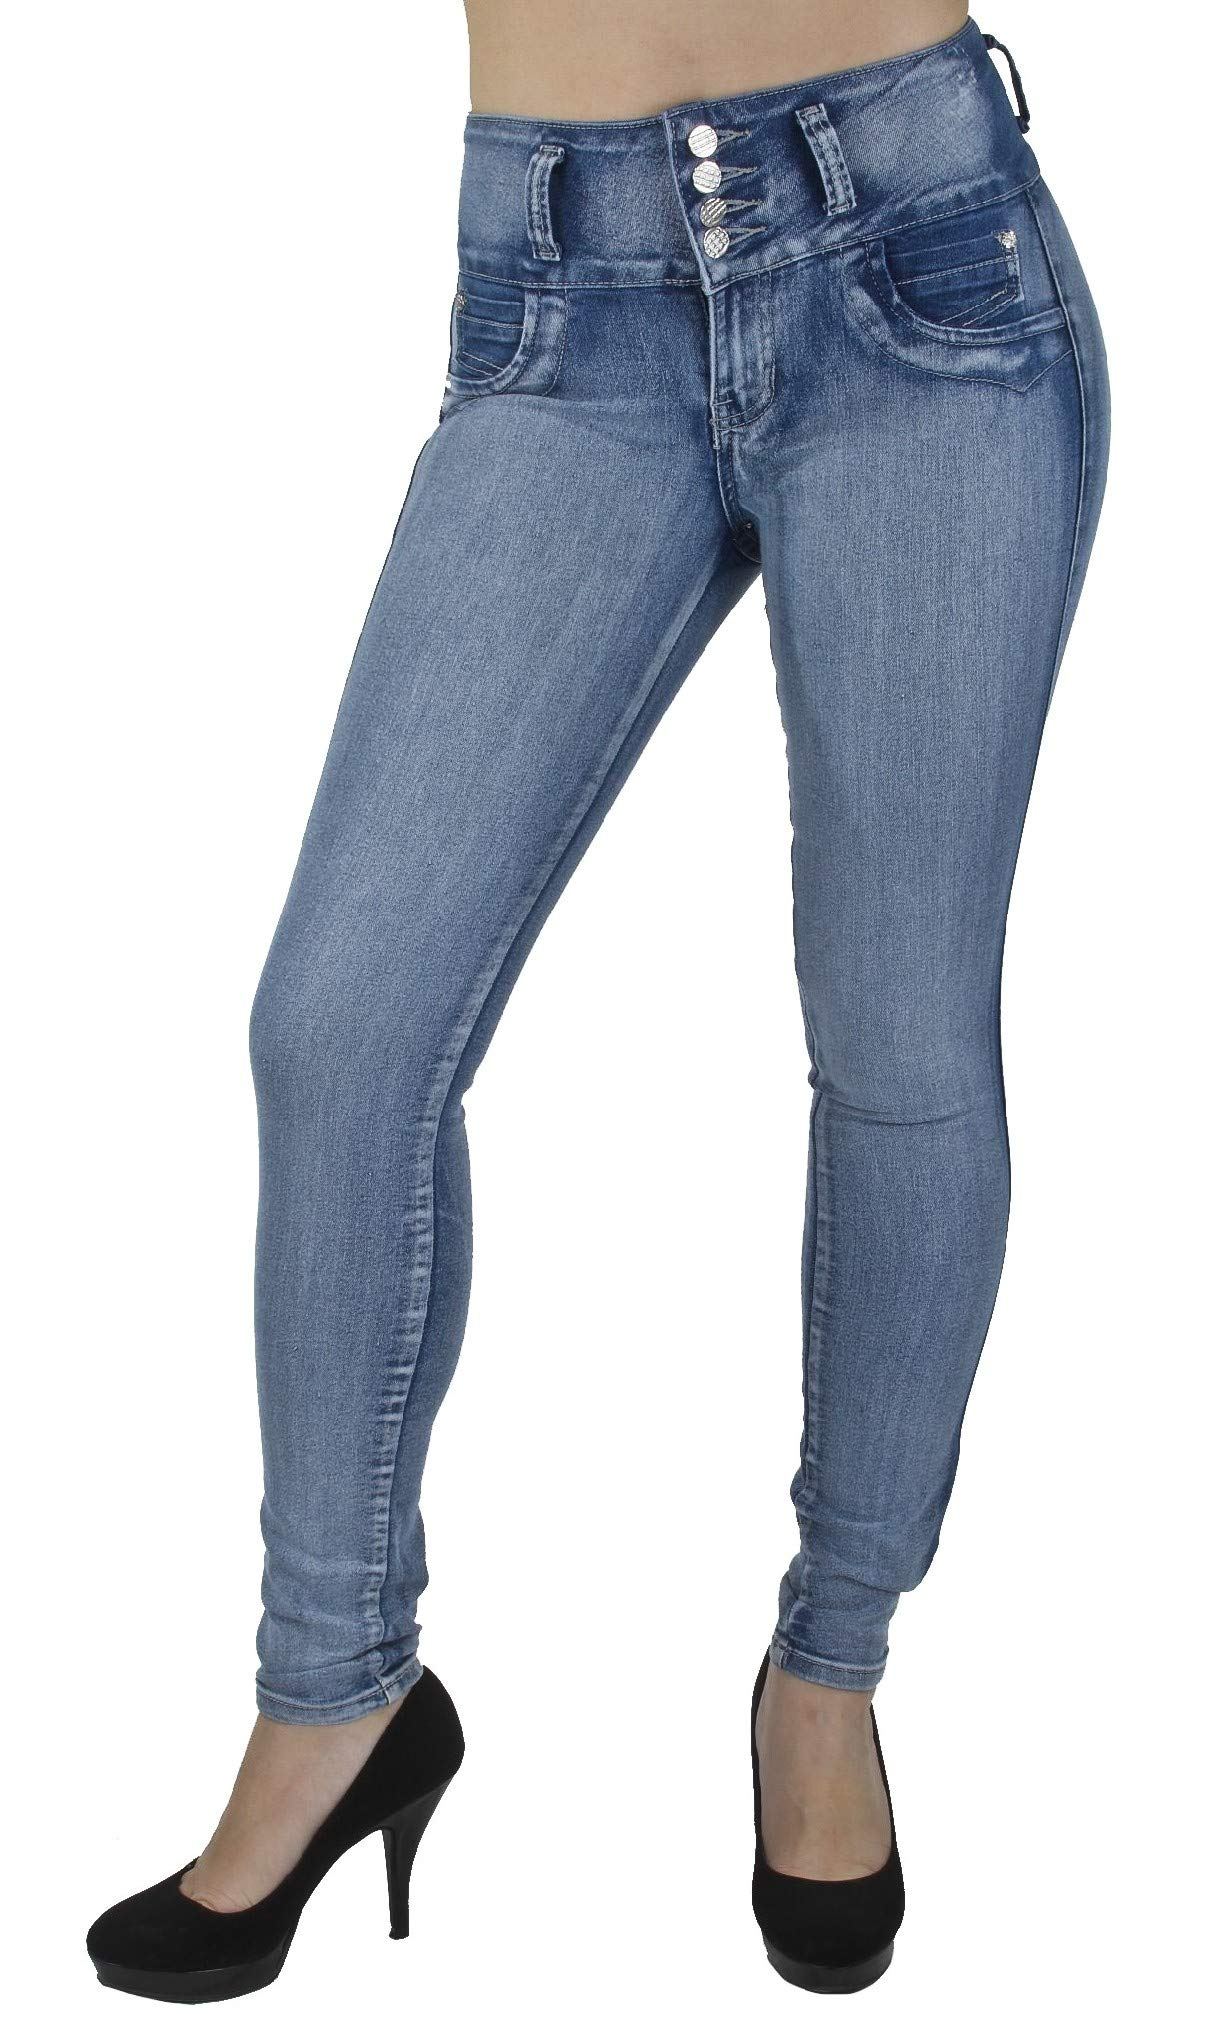 Style G208– Colombian Design, High Waist, Butt Lift, Levanta Cola, Skinny Jeans in M. Blue Size 7